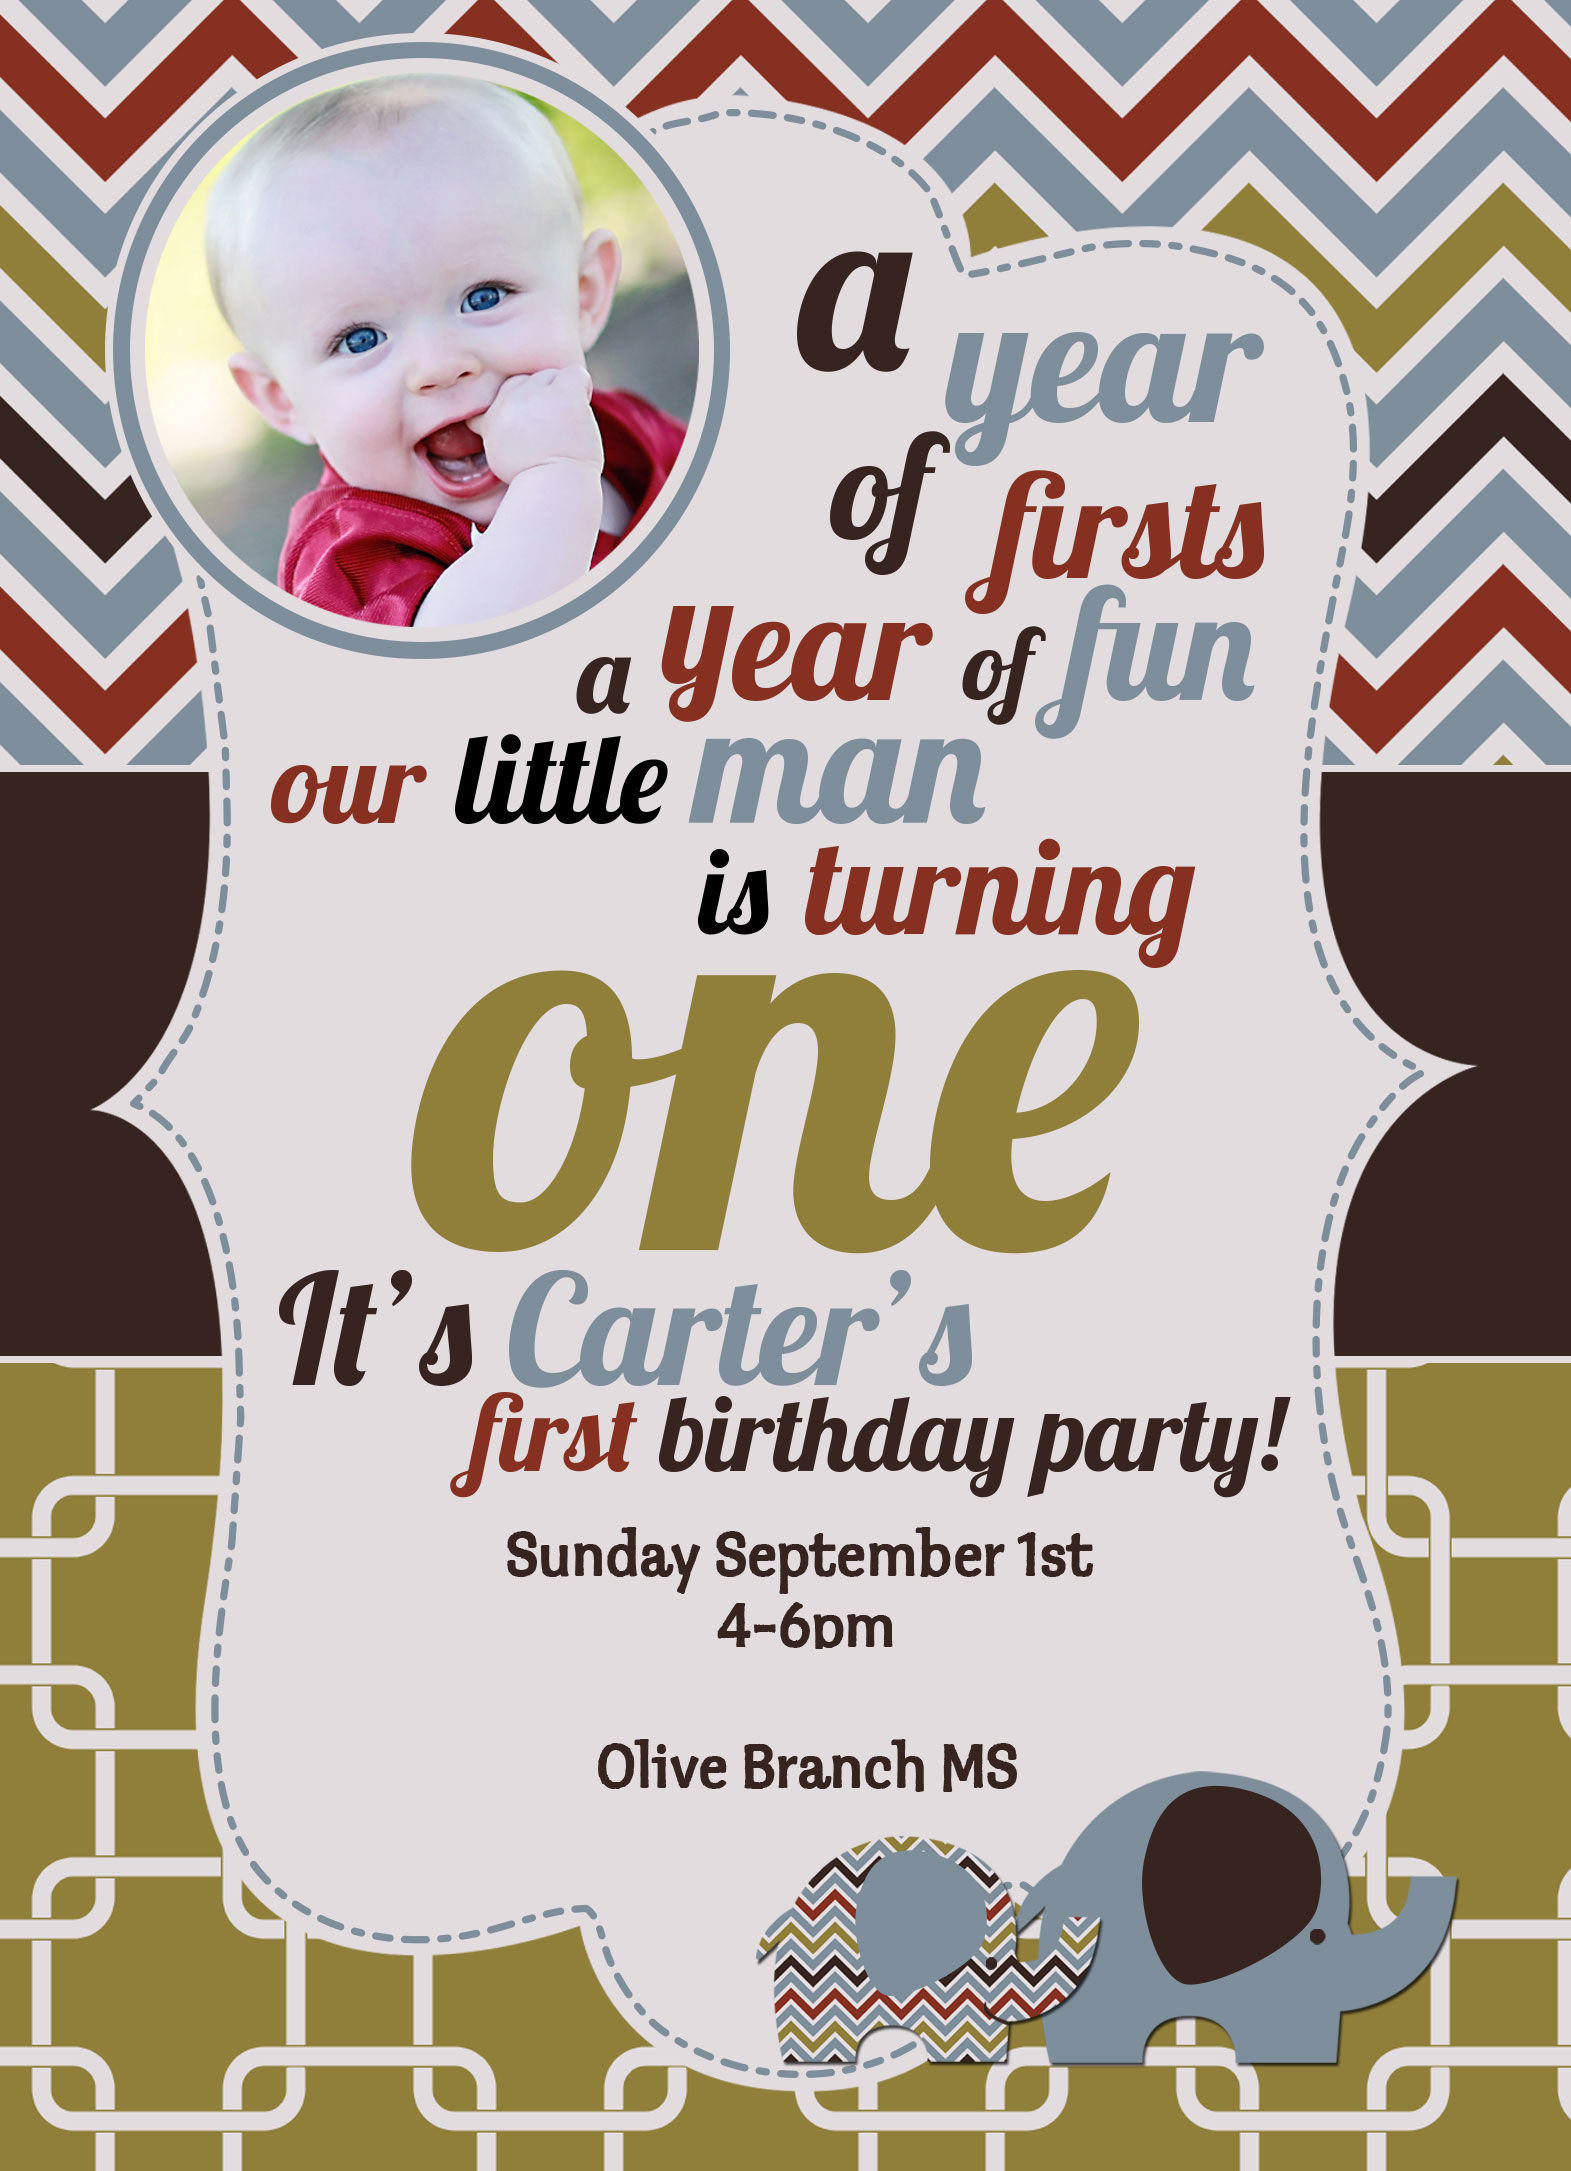 Birthday Invitation for Carter down in Mississippi: By Factory, Digital Agency In Manchester